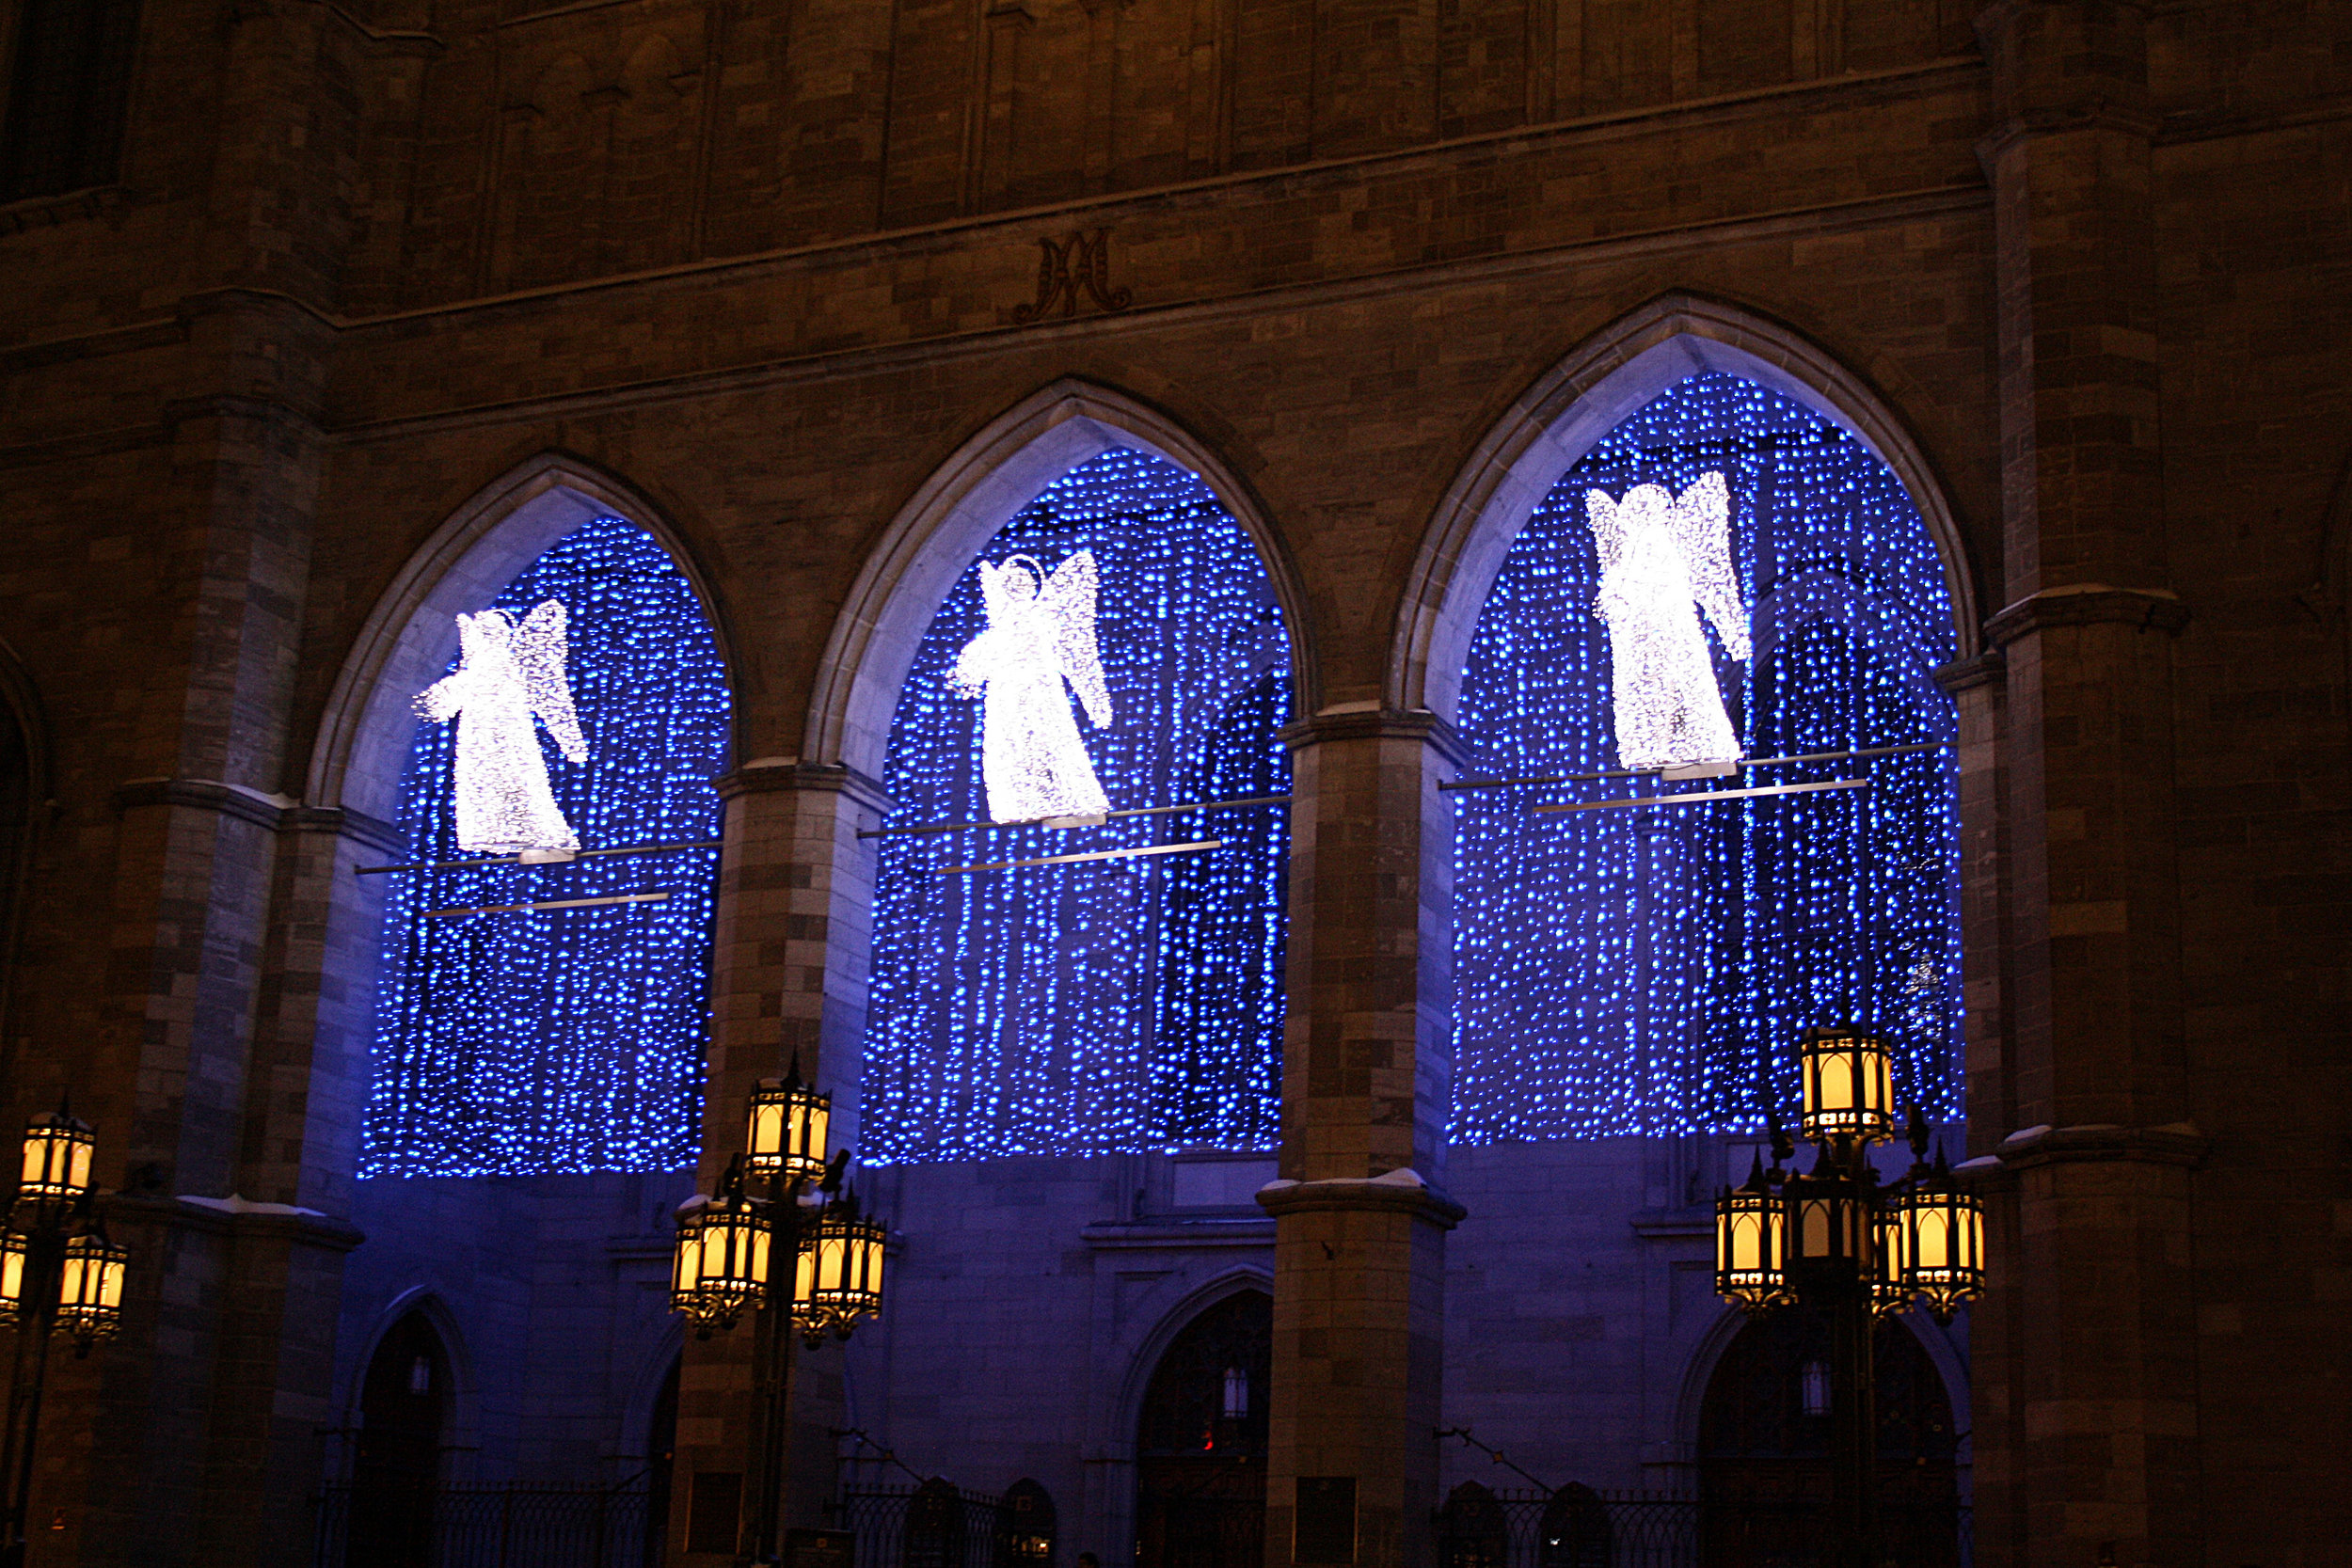 Et la lumiere fut: Spectacle son et lumiere (And then there was light: Sound and light show.